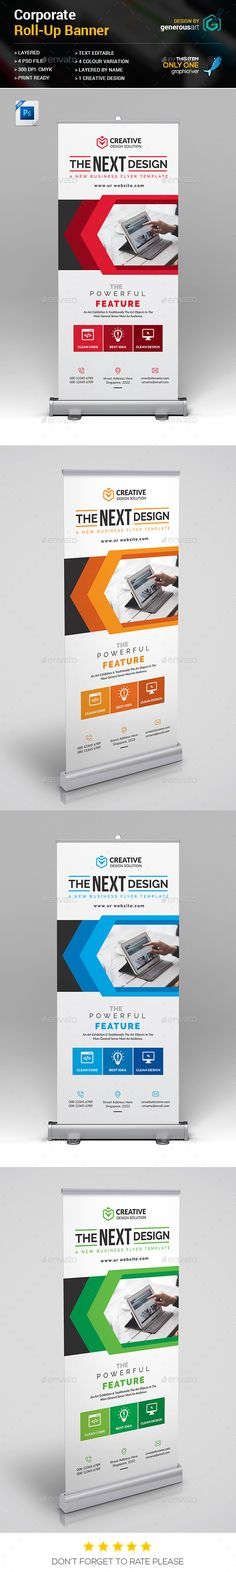 Corporate Roll-Up Banner | Rollup banner, Banner template and Banners